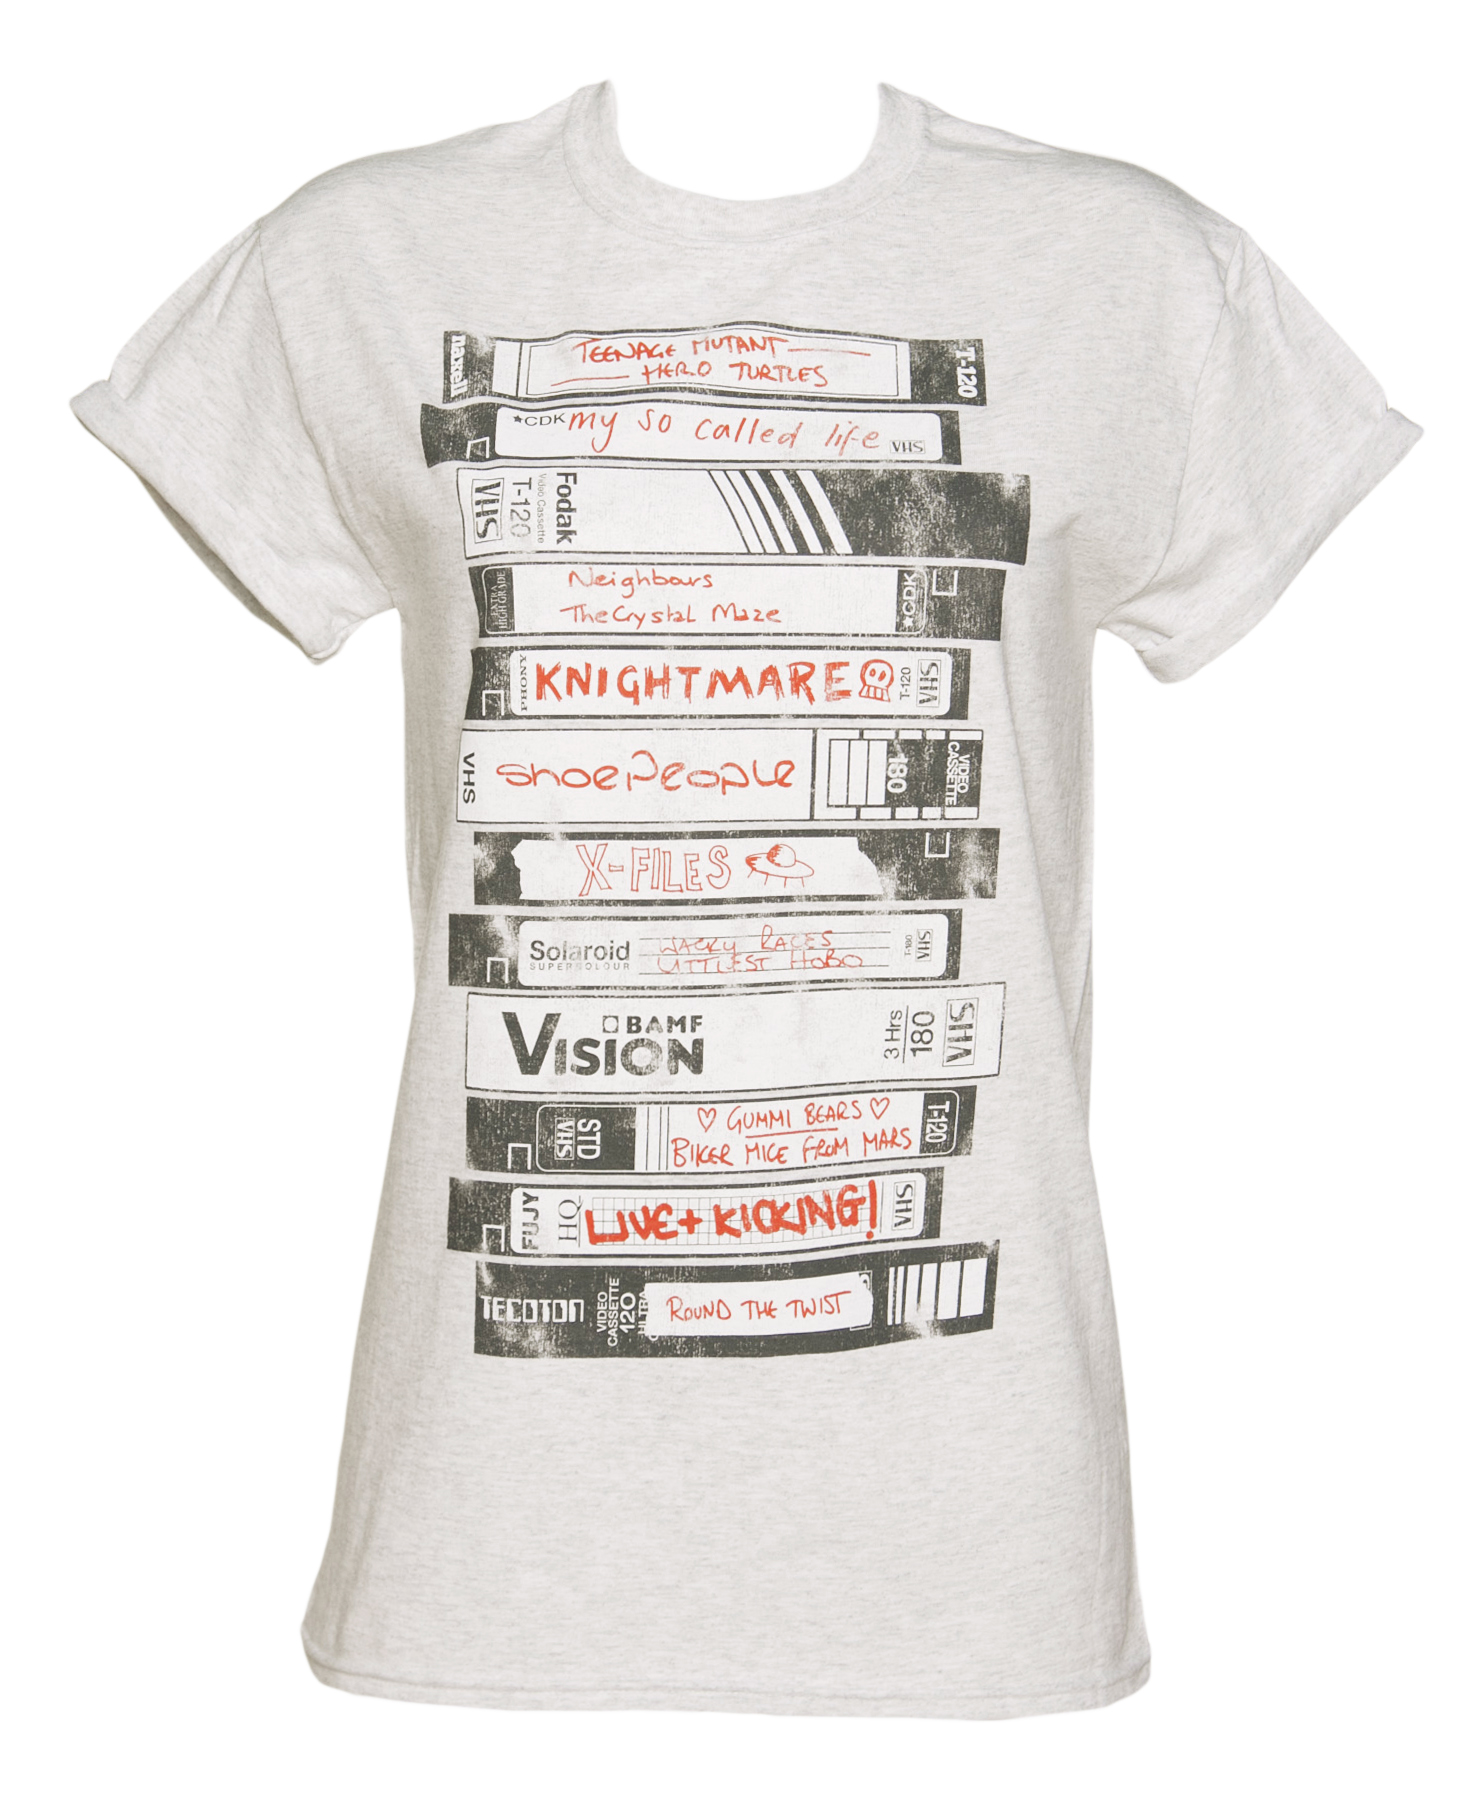 Ladies Old School Video Tapes Collection Rolled Sleeve Boyfriend T-Shirt £19.99